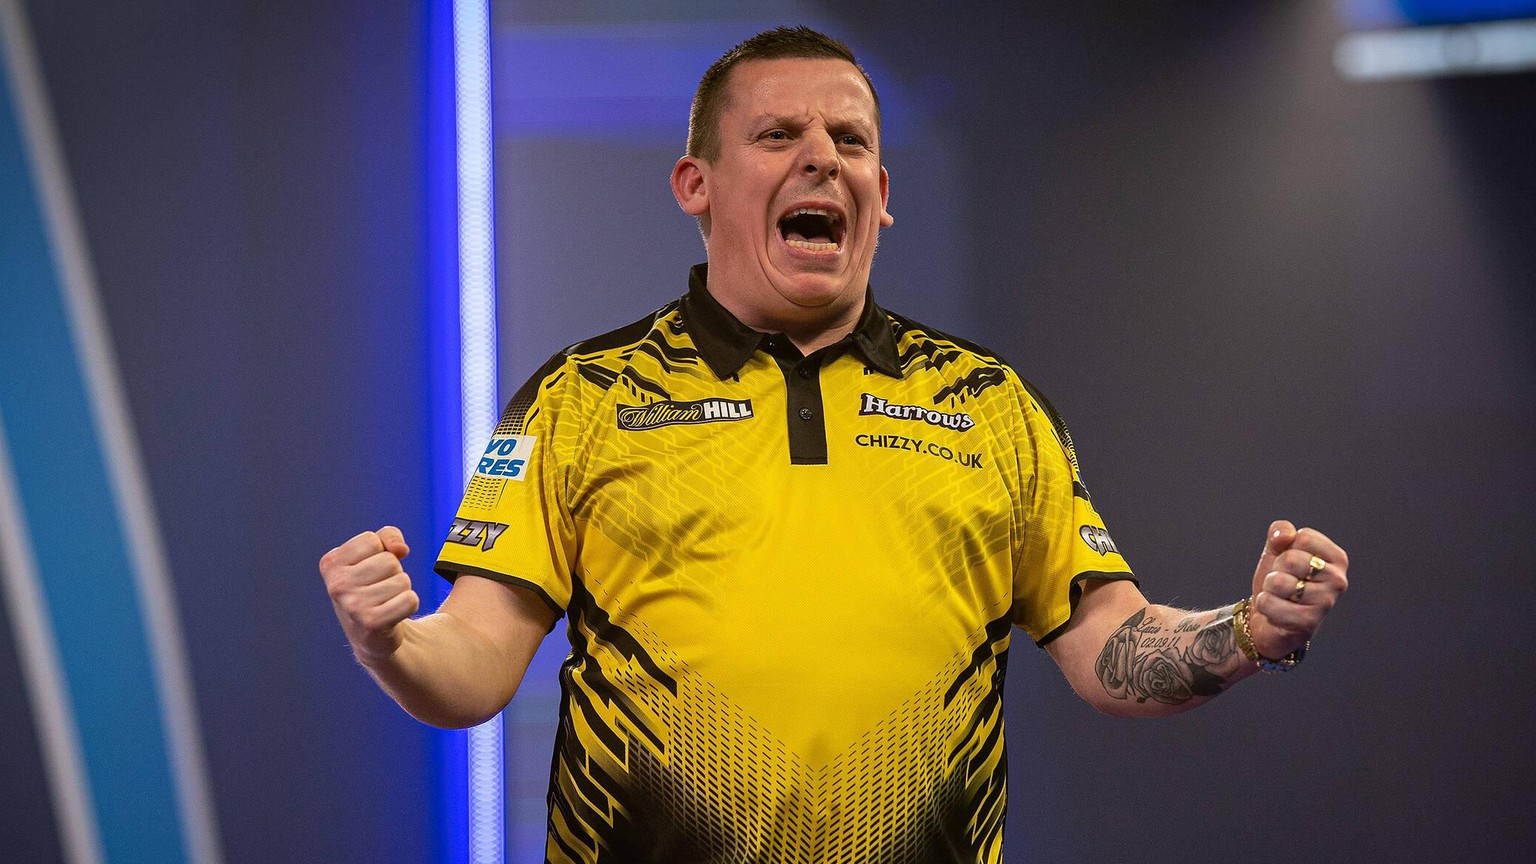 William Hill World Darts Championship 30/12/2020. Dave Chisnall England wins and celebrates during the Fourth Round of the William Hill World Darts Championship at Alexandra Palace, London, United Kingdom on 30 December 2020. London Alexandra Palace London United Kingdom Editorial use only PUBLICATIONxNOTxINxUK , Copyright: xIanxStephenx PSI-11385-0103